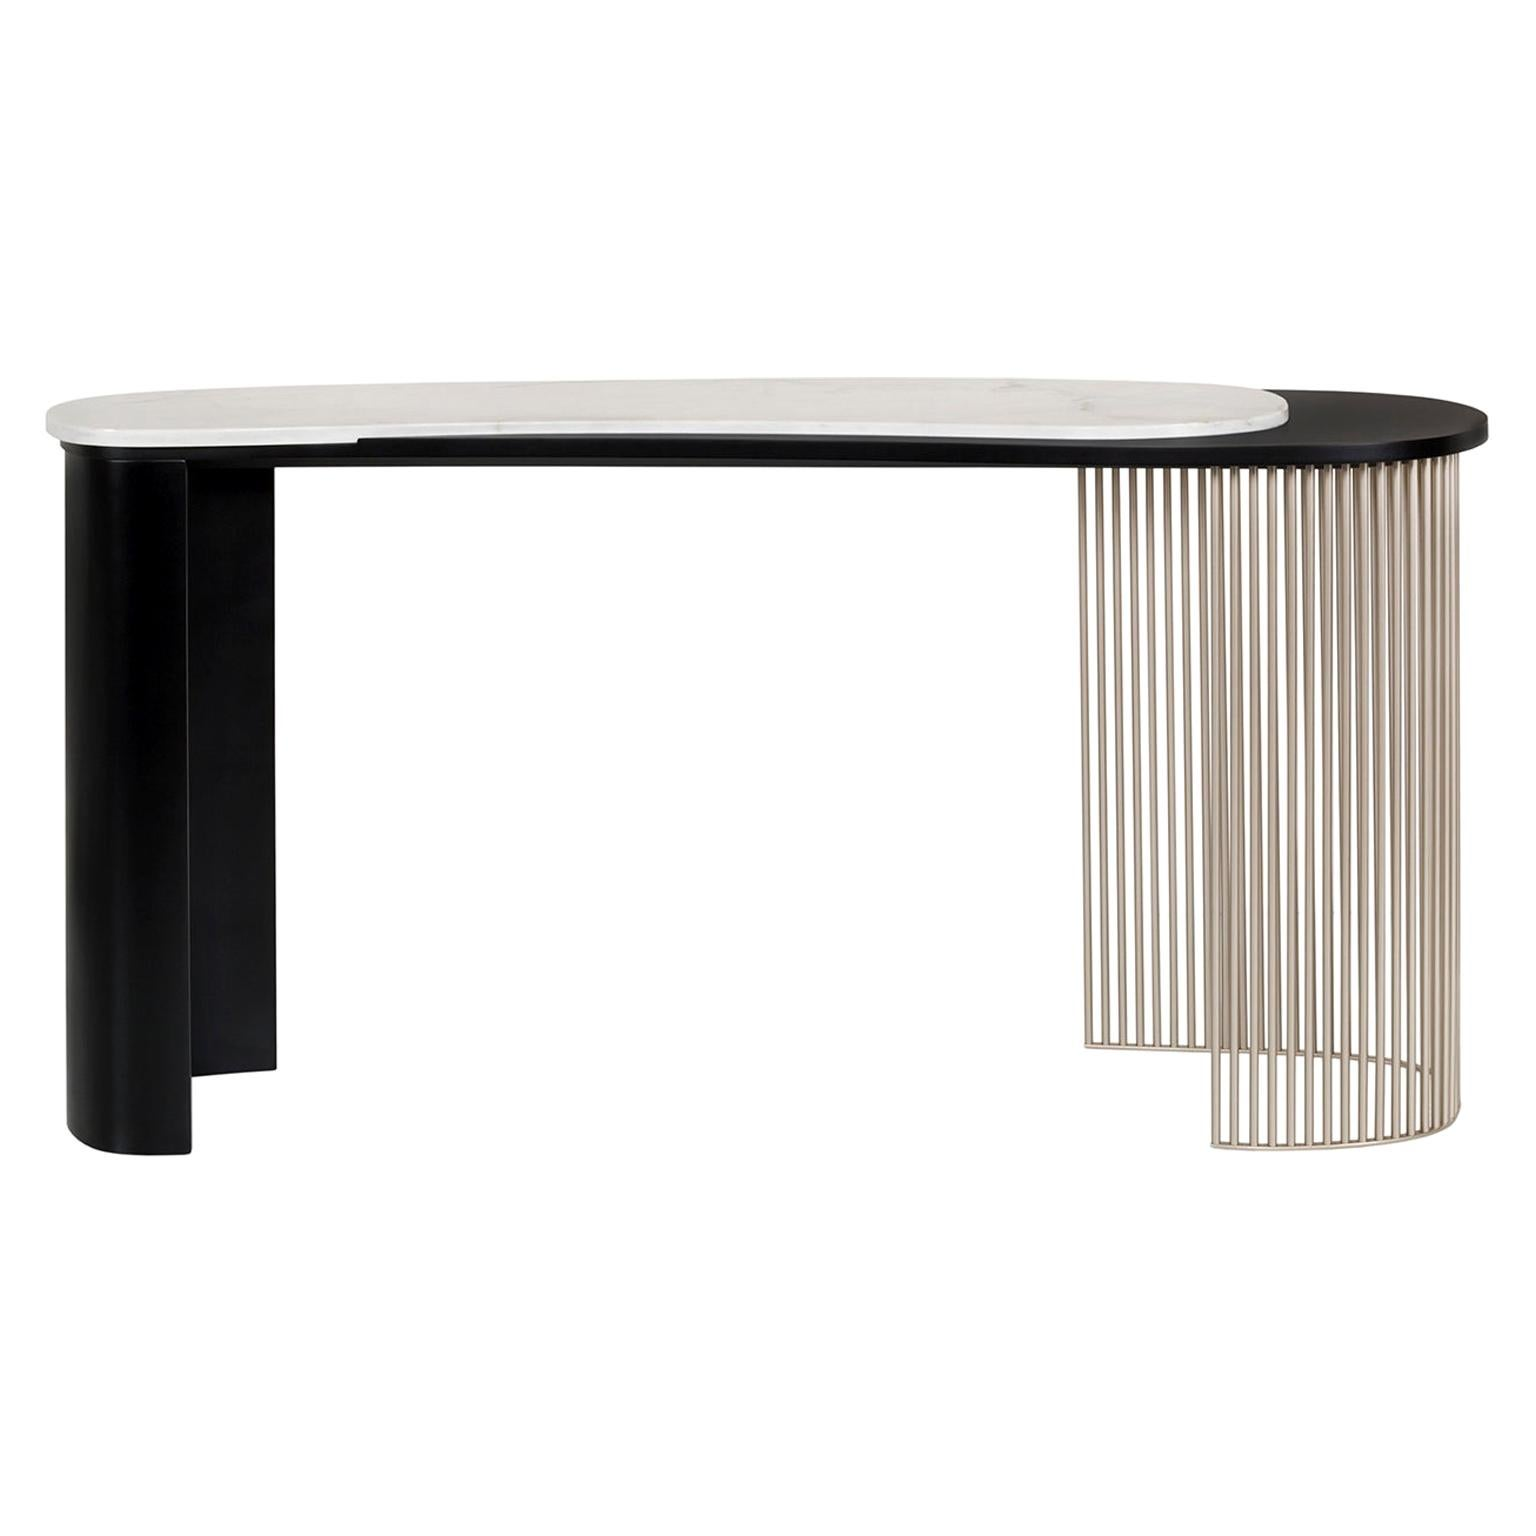 21st Century Modern Castelo Console Handcrafted Portugal by Greenapple